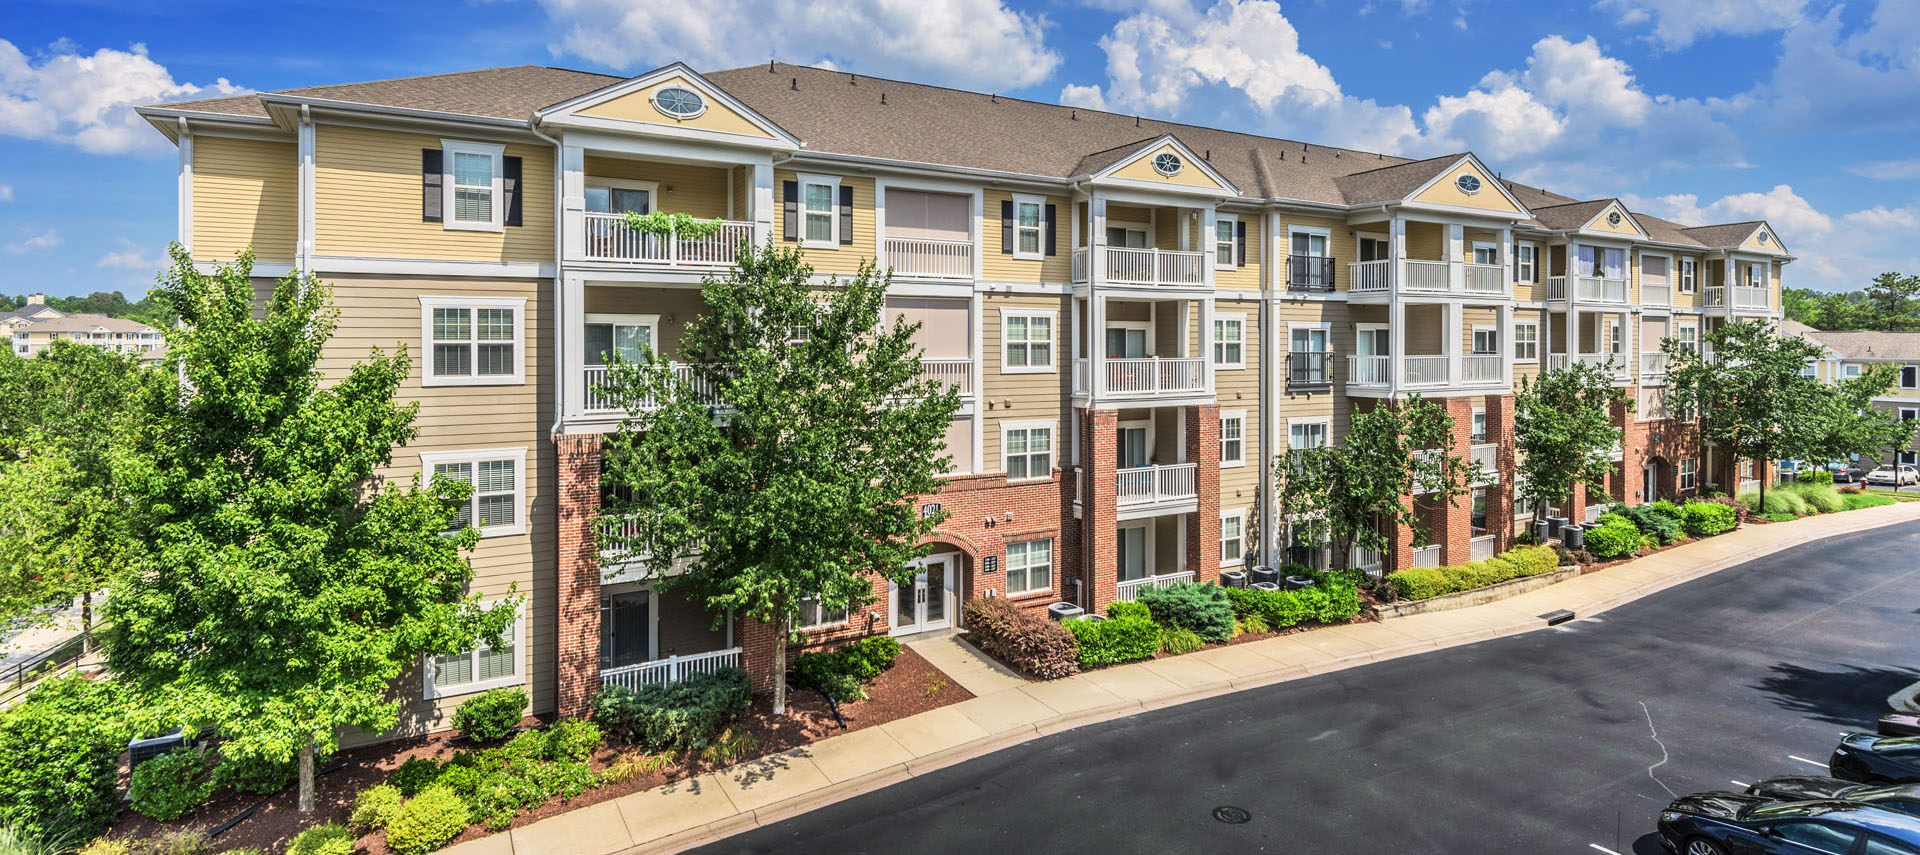 Woodfield Glen | Apartments For Rent In Raleigh, NC | Home Design Inspirations